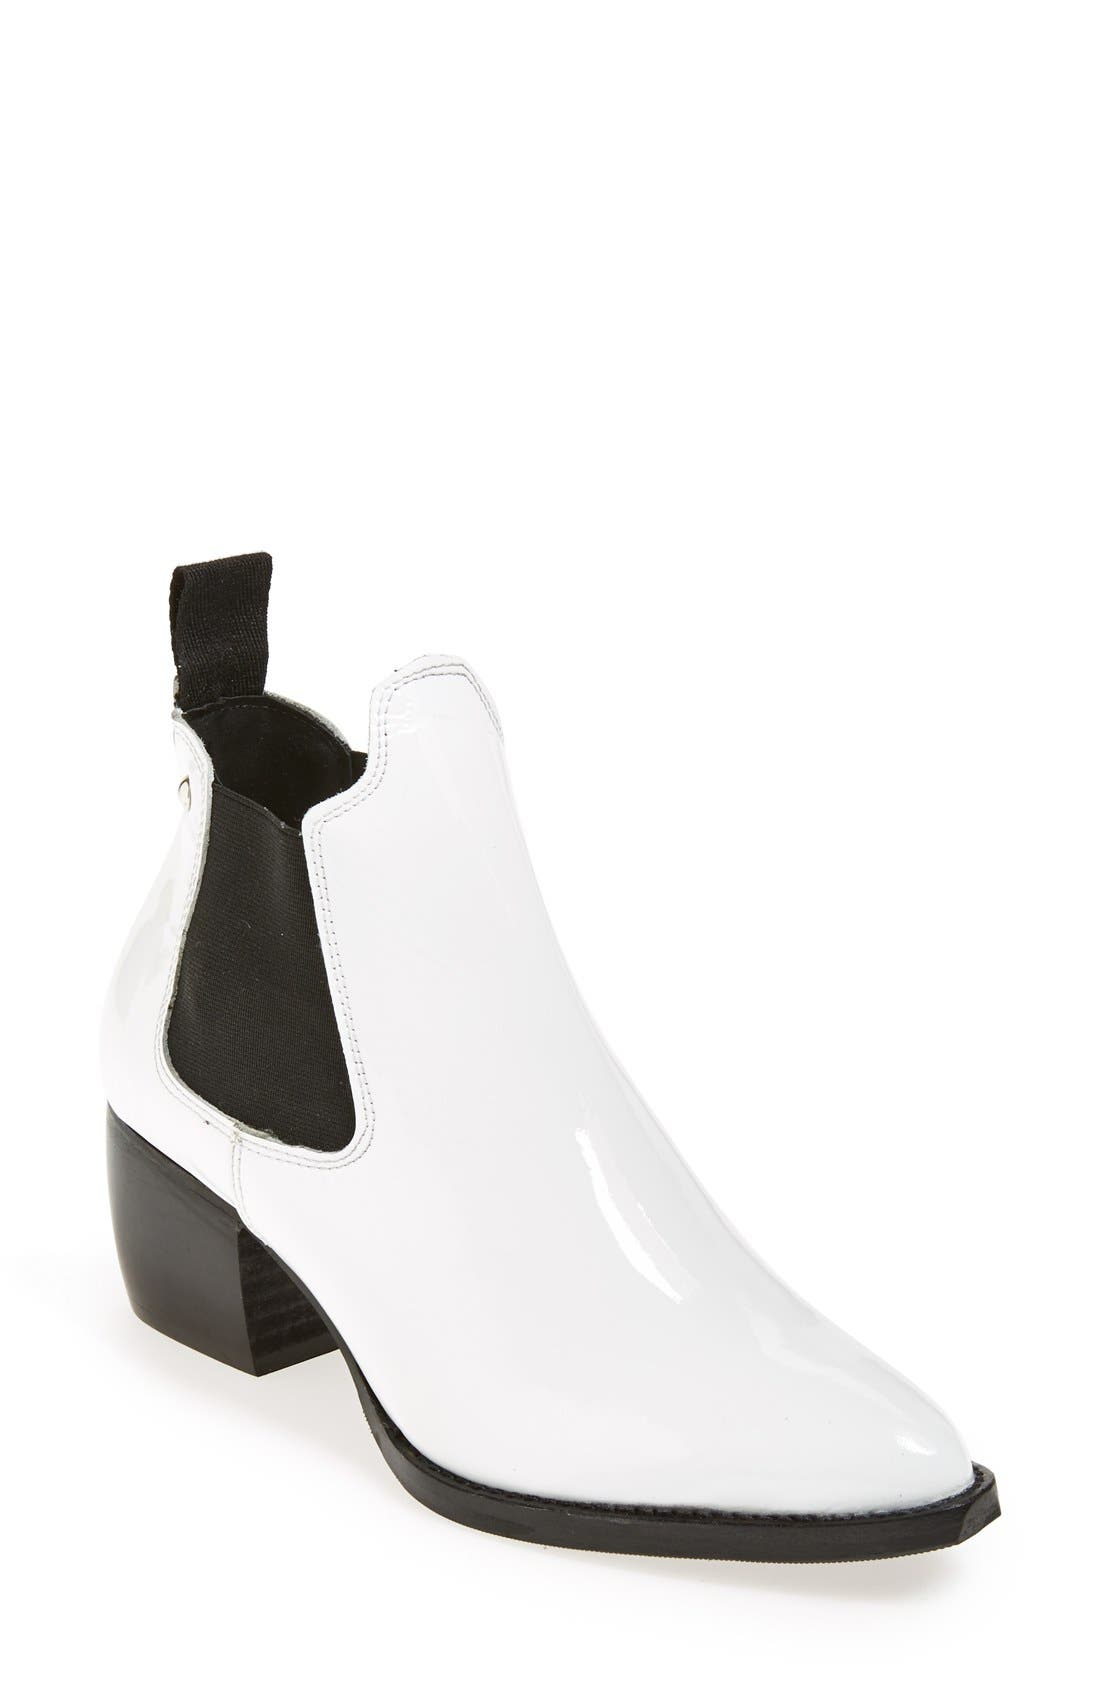 Main Image - Topshop 'Margot' Leather Ankle Bootie (Women)